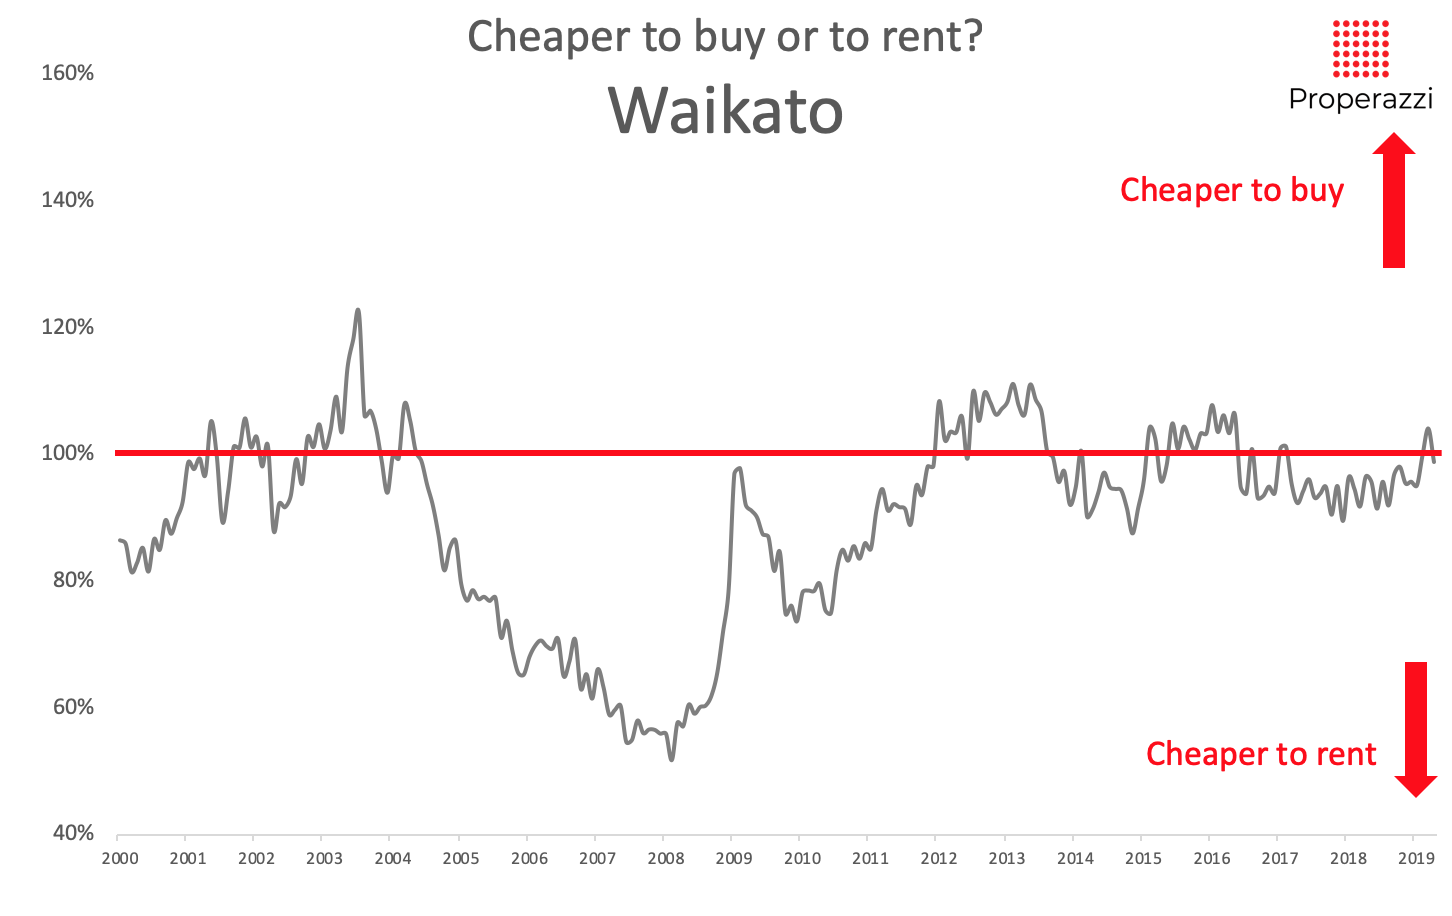 Rent vs buy for the Waikato 2019